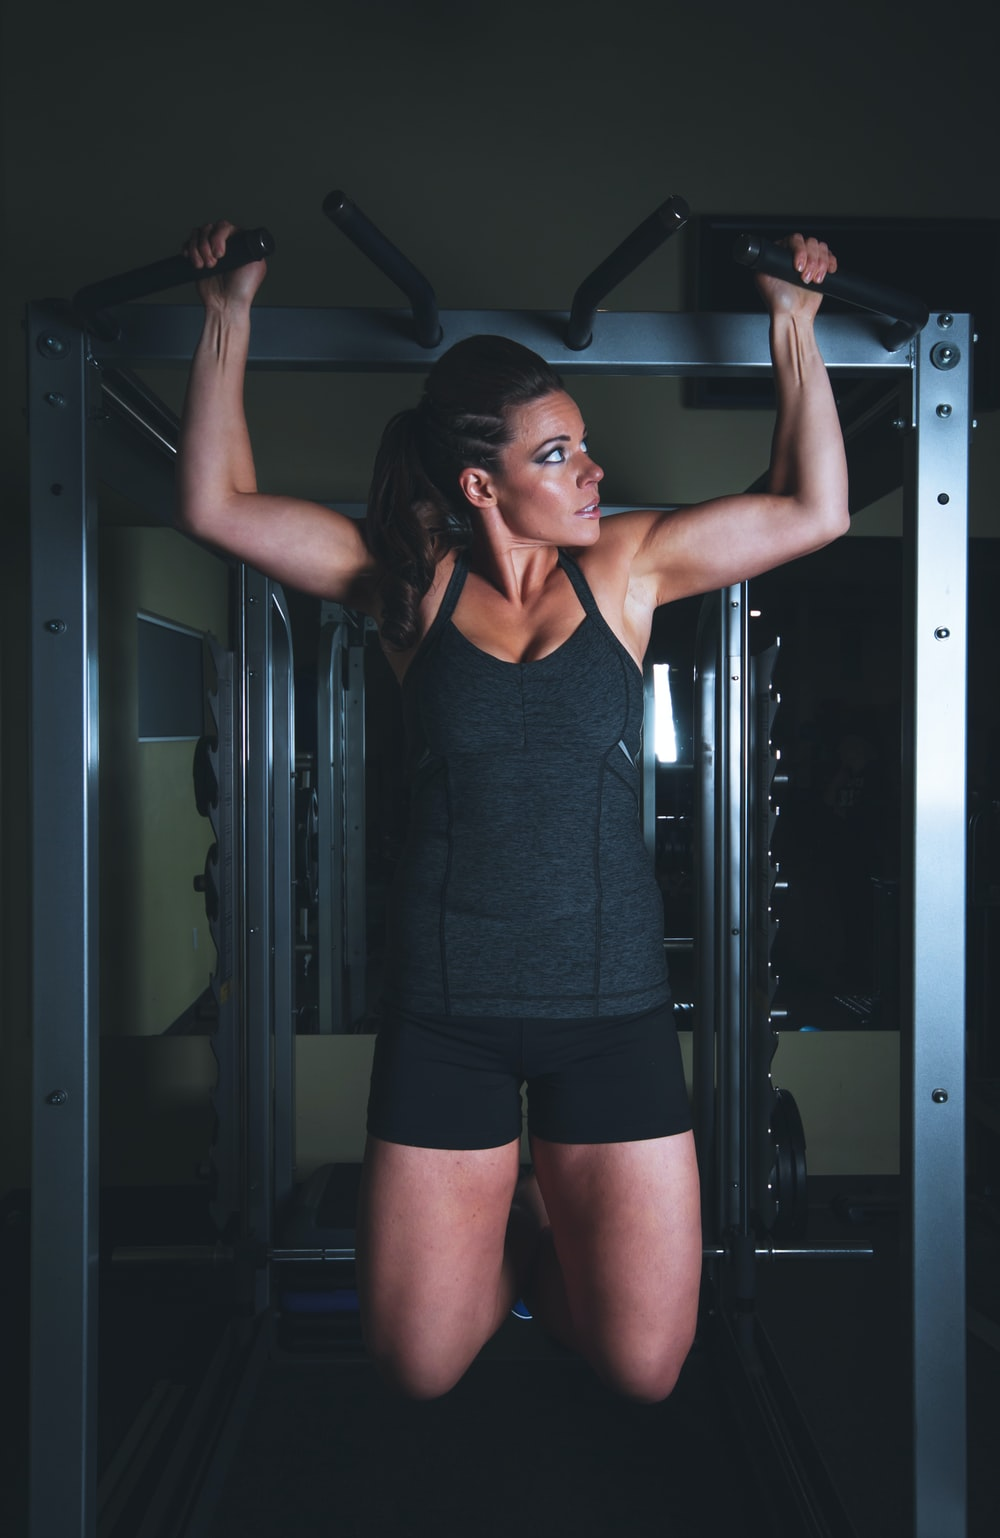 Photo Via: https://unsplash.com/photos/KblIFRq1jkgA woman doing a pull up at the gym for bodybuilding training